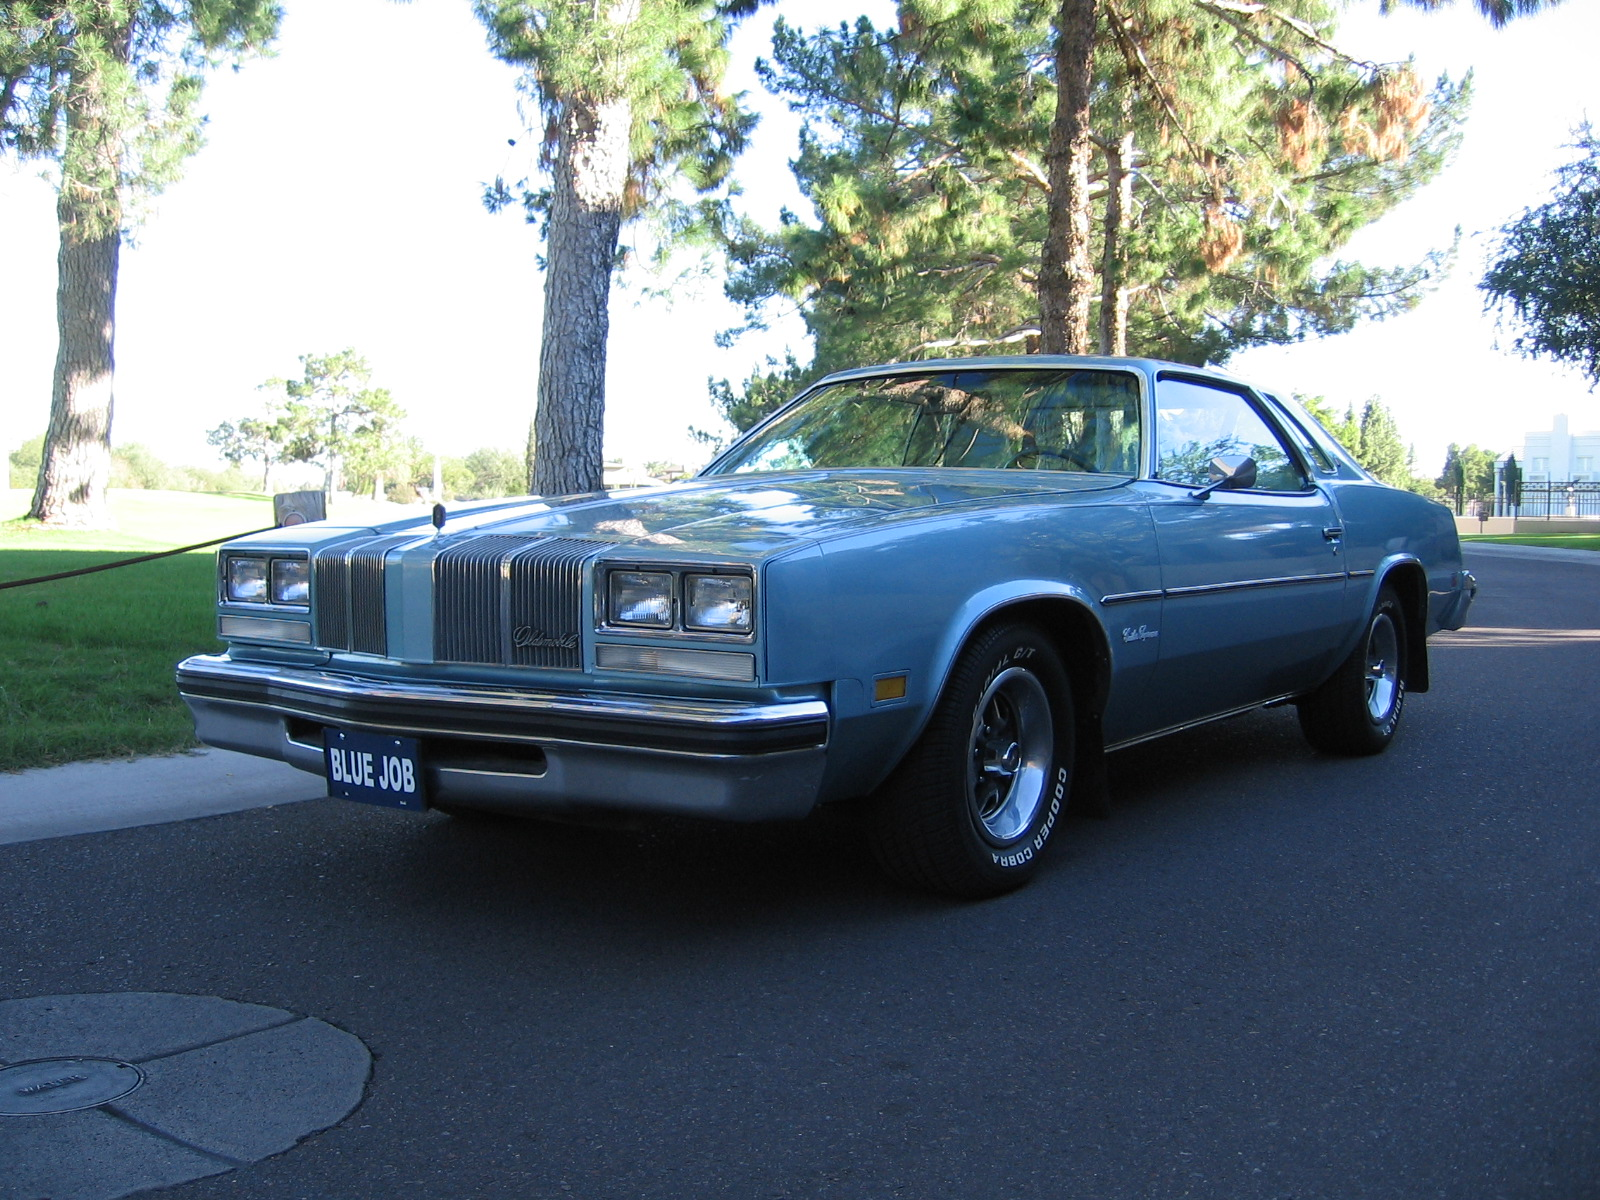 1976 olds cutlass supreme classic cars for sale from the crawdaddy. Black Bedroom Furniture Sets. Home Design Ideas